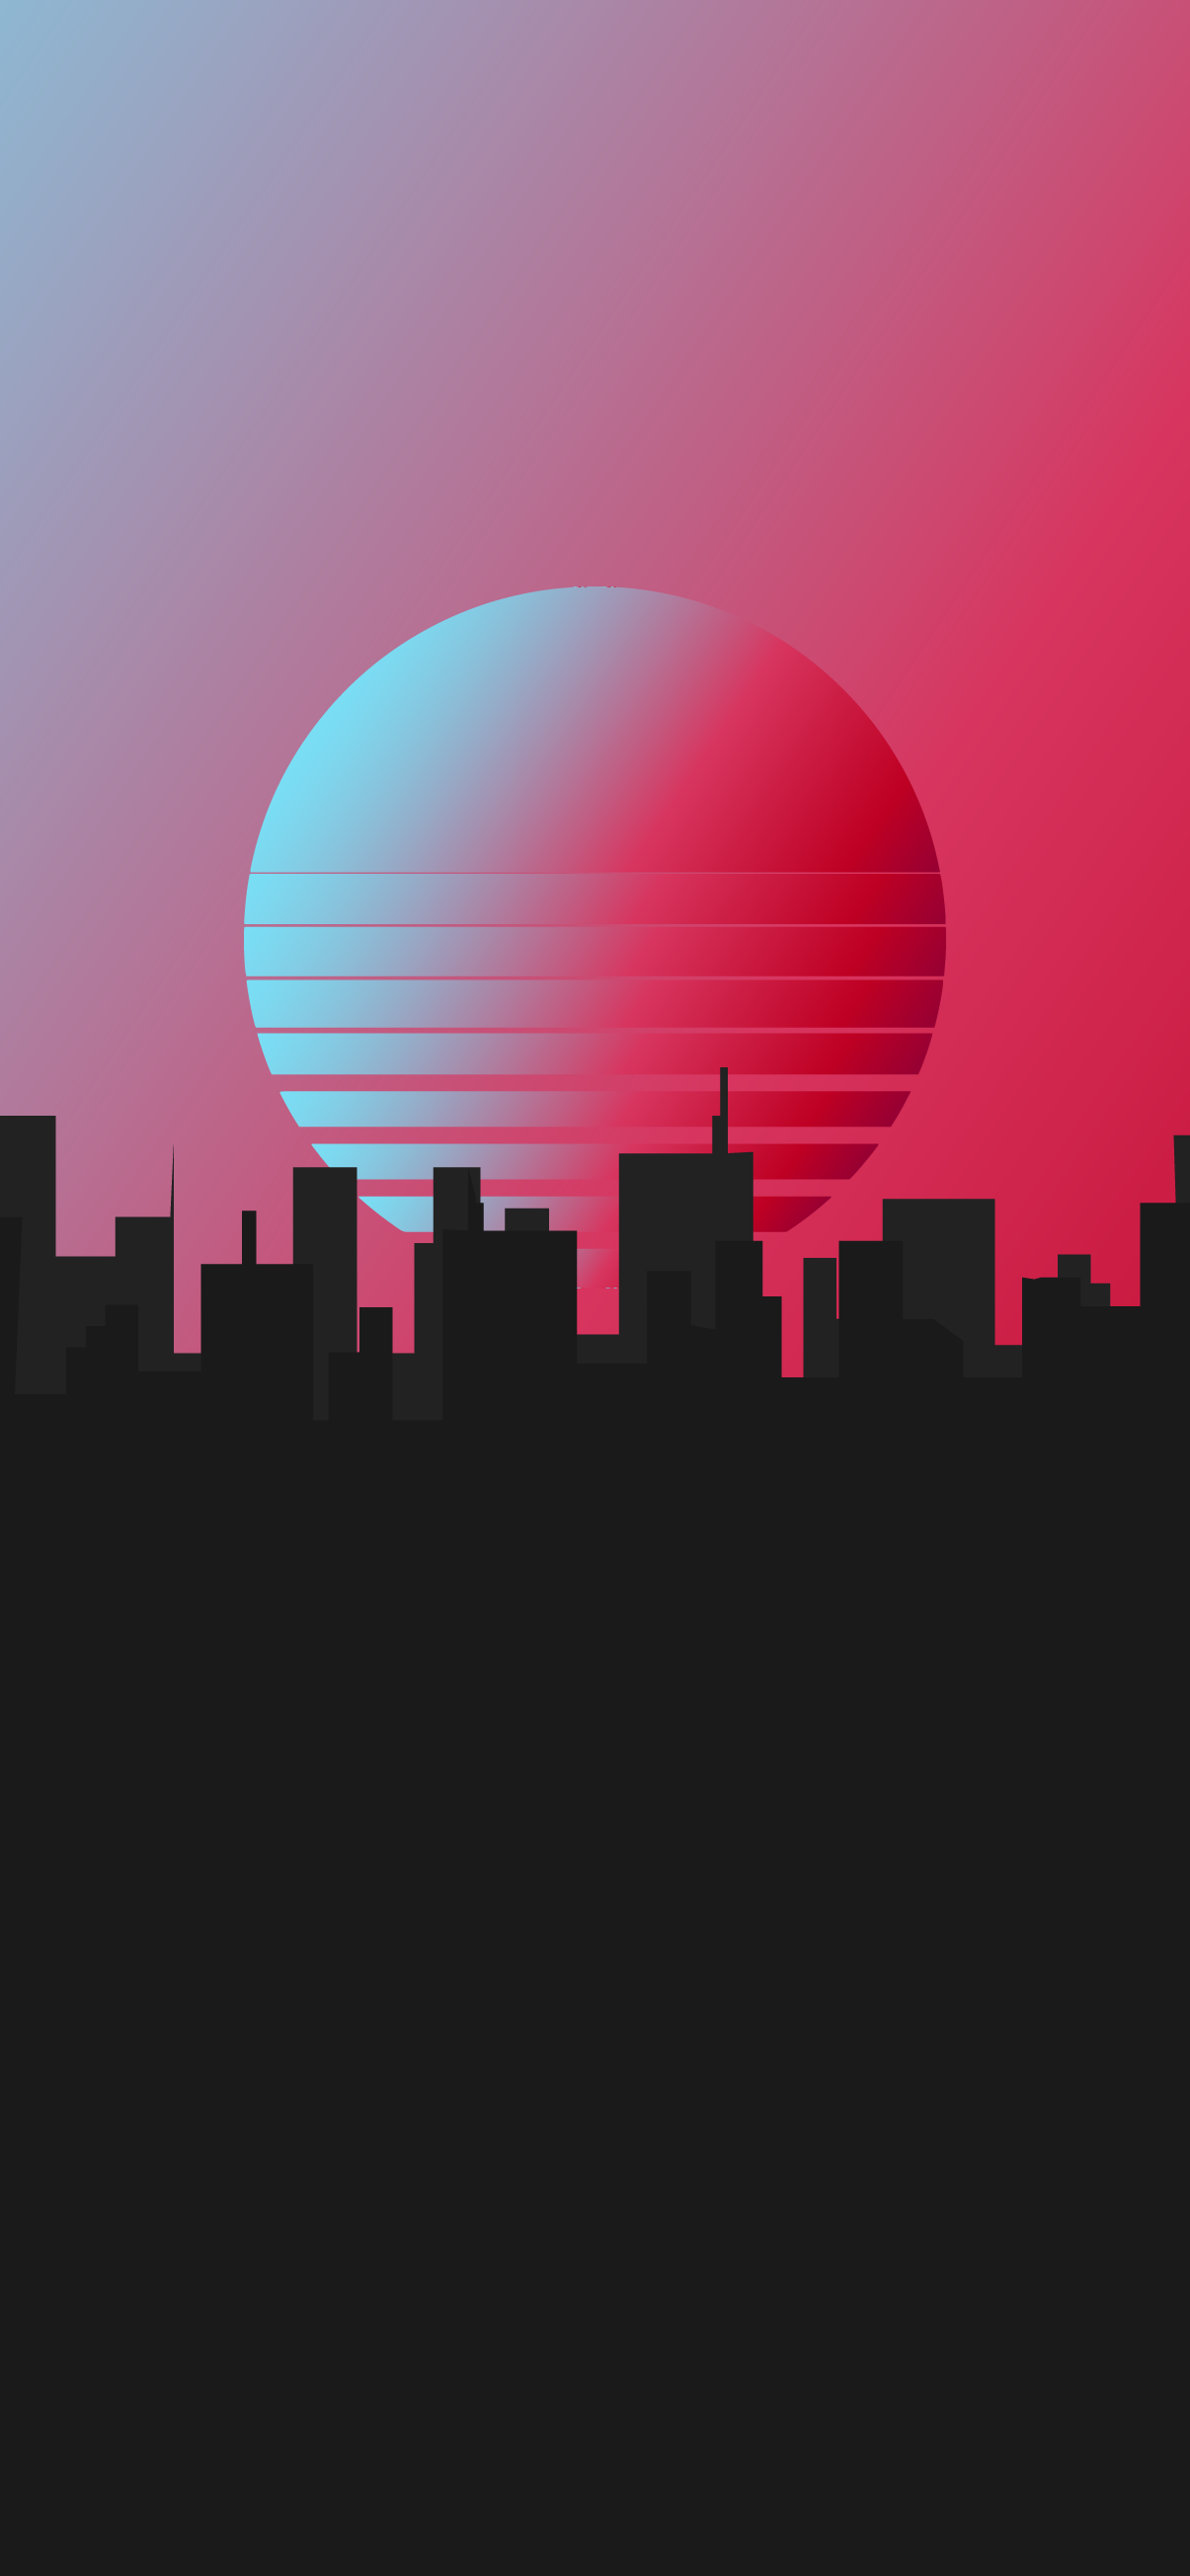 Aesthetic synth retro wave city silhouette buildings wallpaper for phone